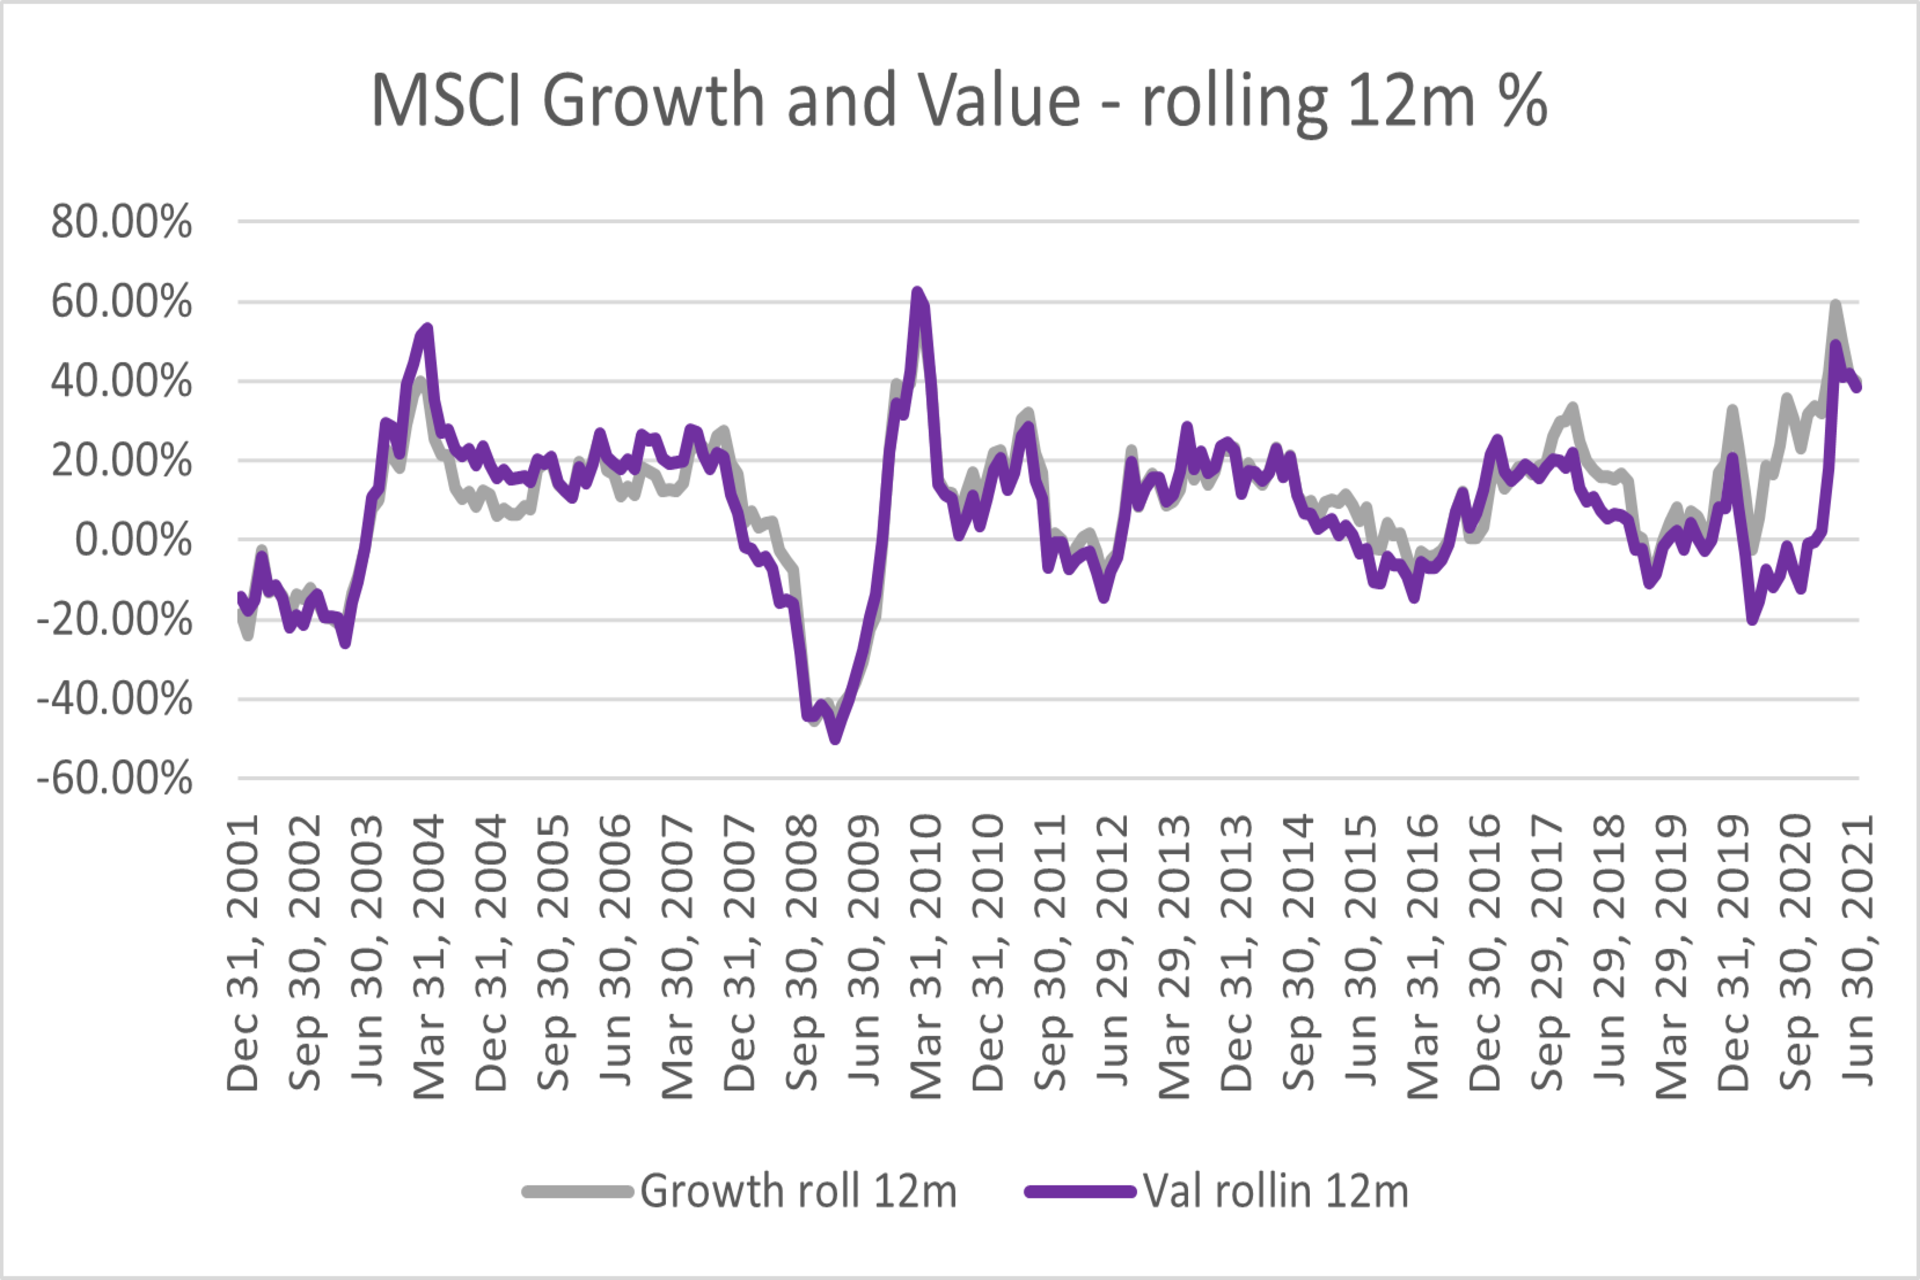 Value vs Growth - 12m rolling %